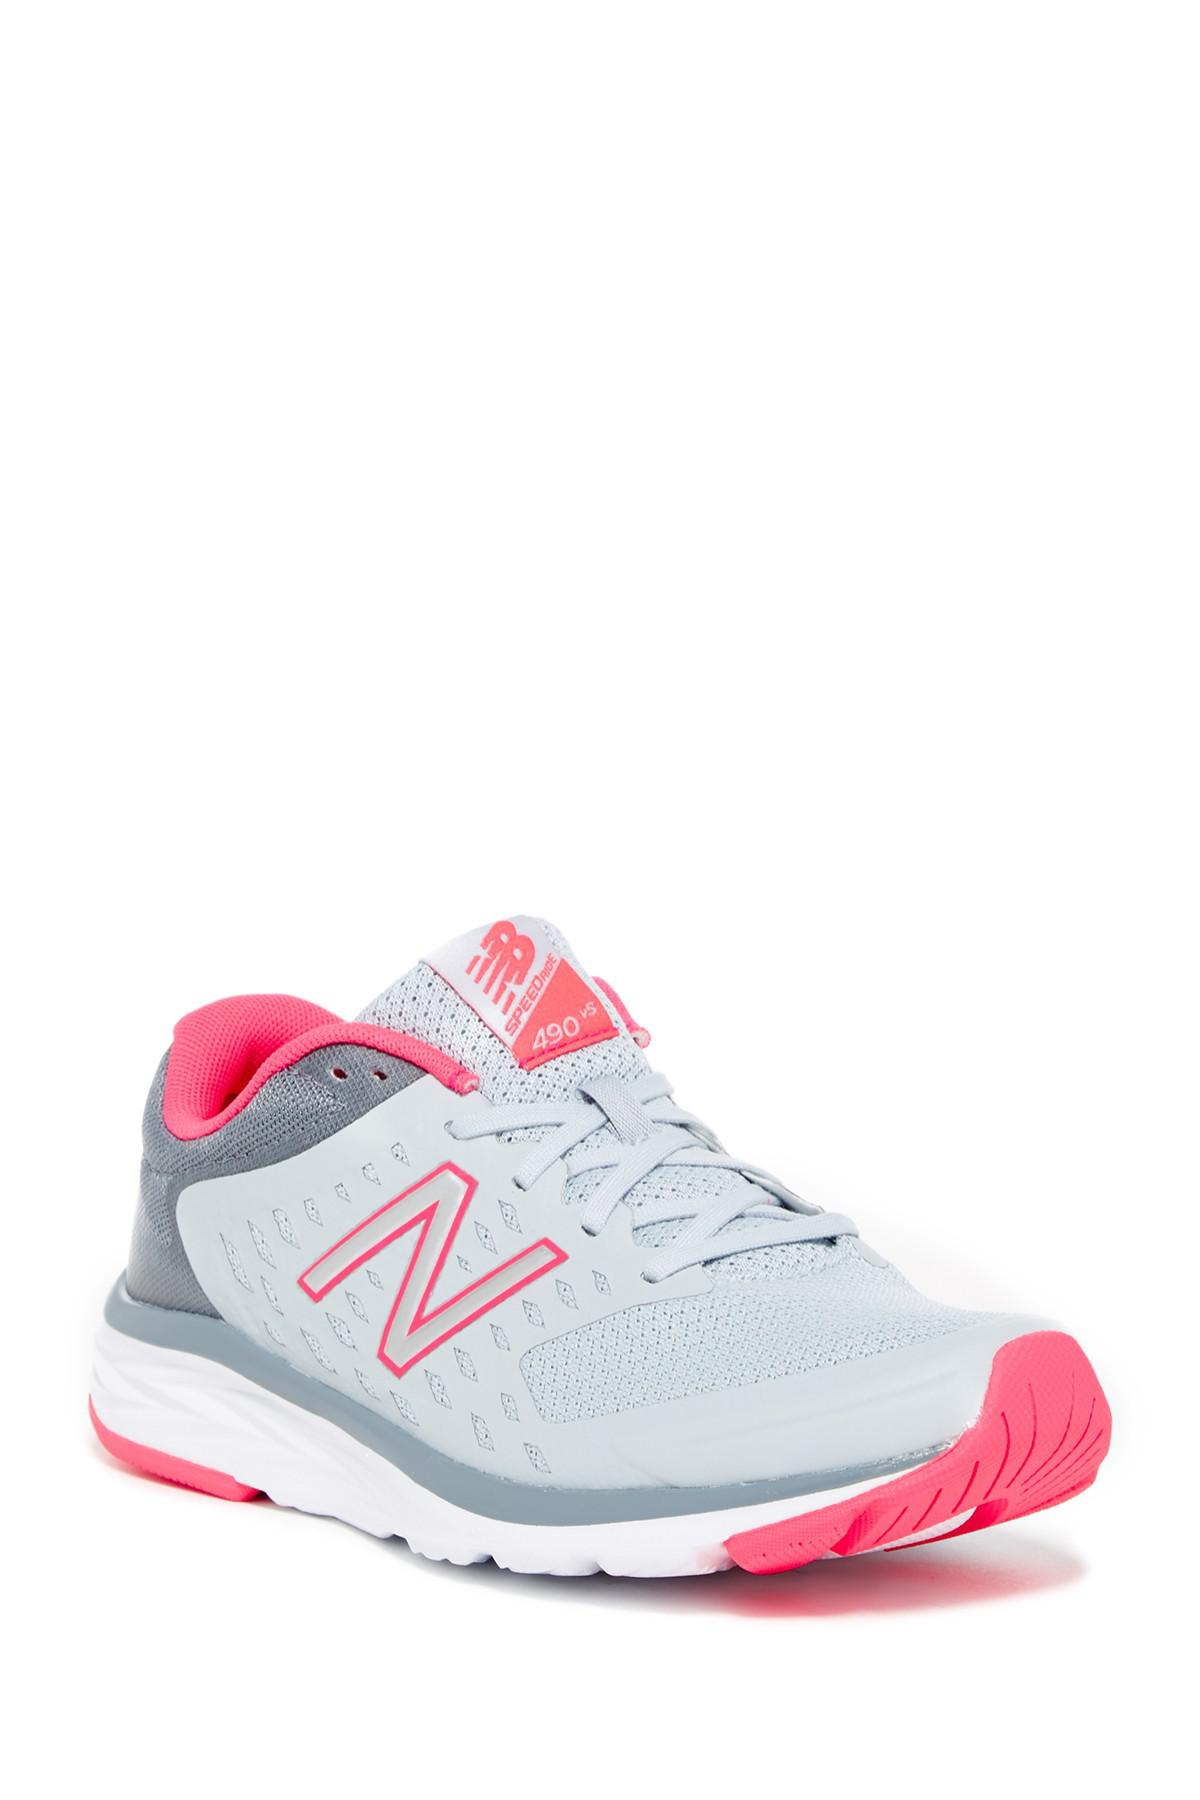 New Balance 490V5 Athletic Sneaker - Wide Width Available D0dzHv4